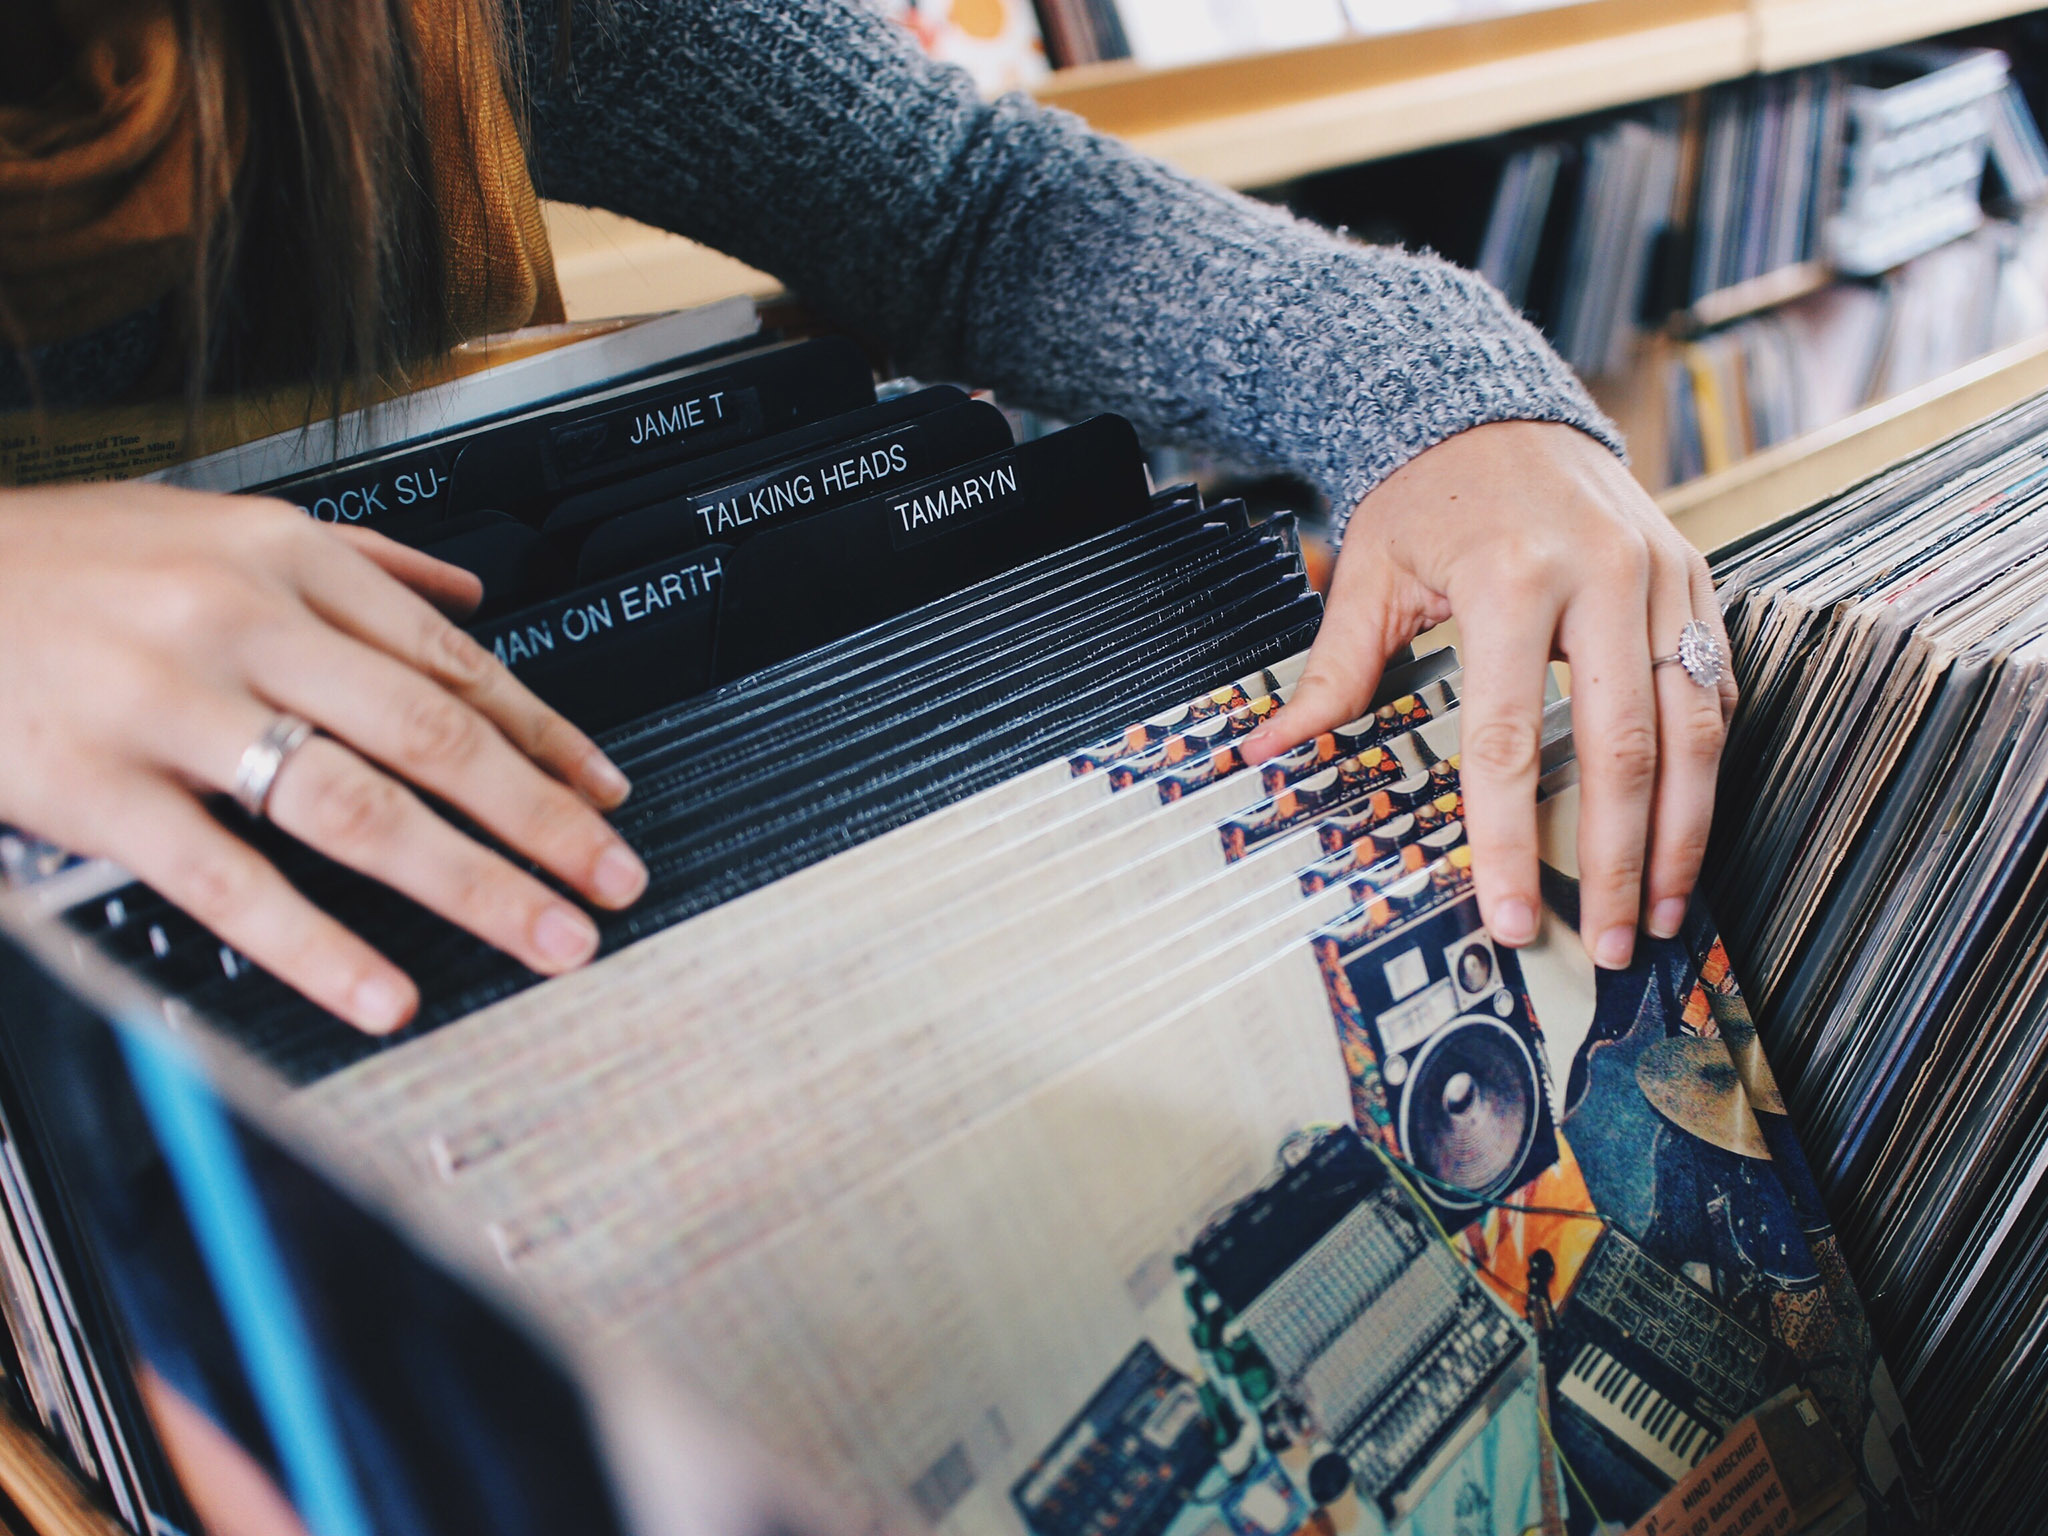 A woman searches through the vinyl collection in a record store